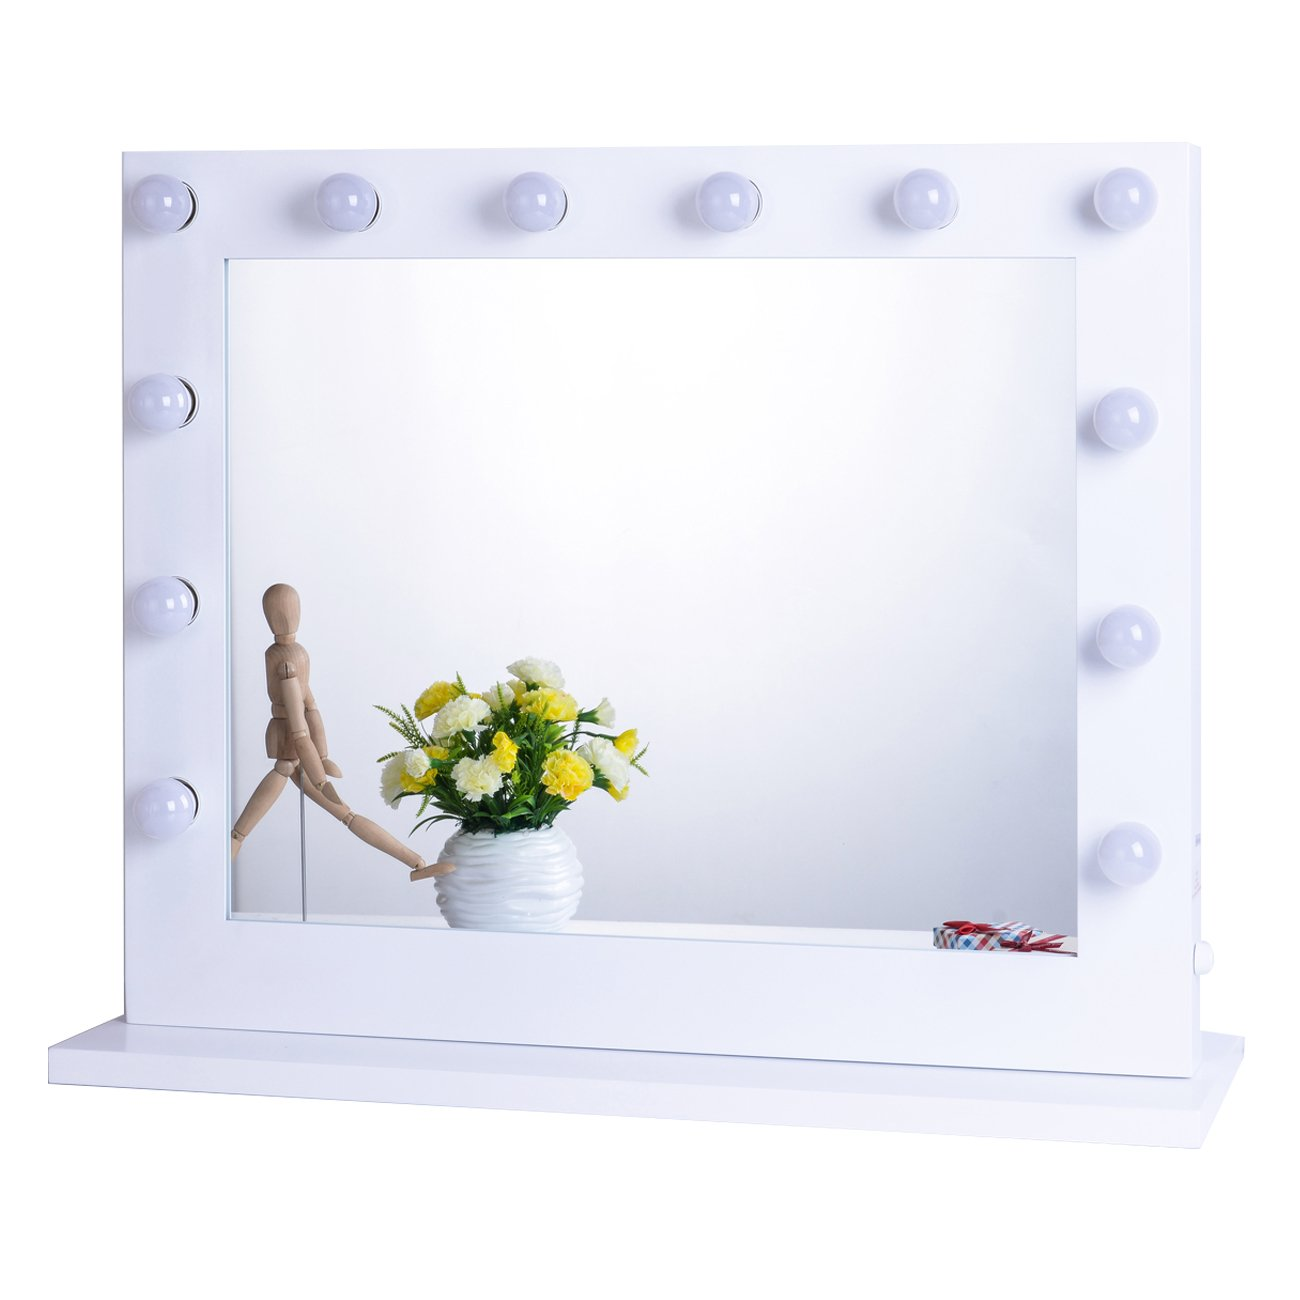 Chende Hollywood Lighted Makeup Vanity Mirror Light, Makeup Dressing Table Vanity Set Mirrors with Dimmer, Tabletop or Wall Mounted Vanity, 14 LED Light Bulbs Included (White) by Chende